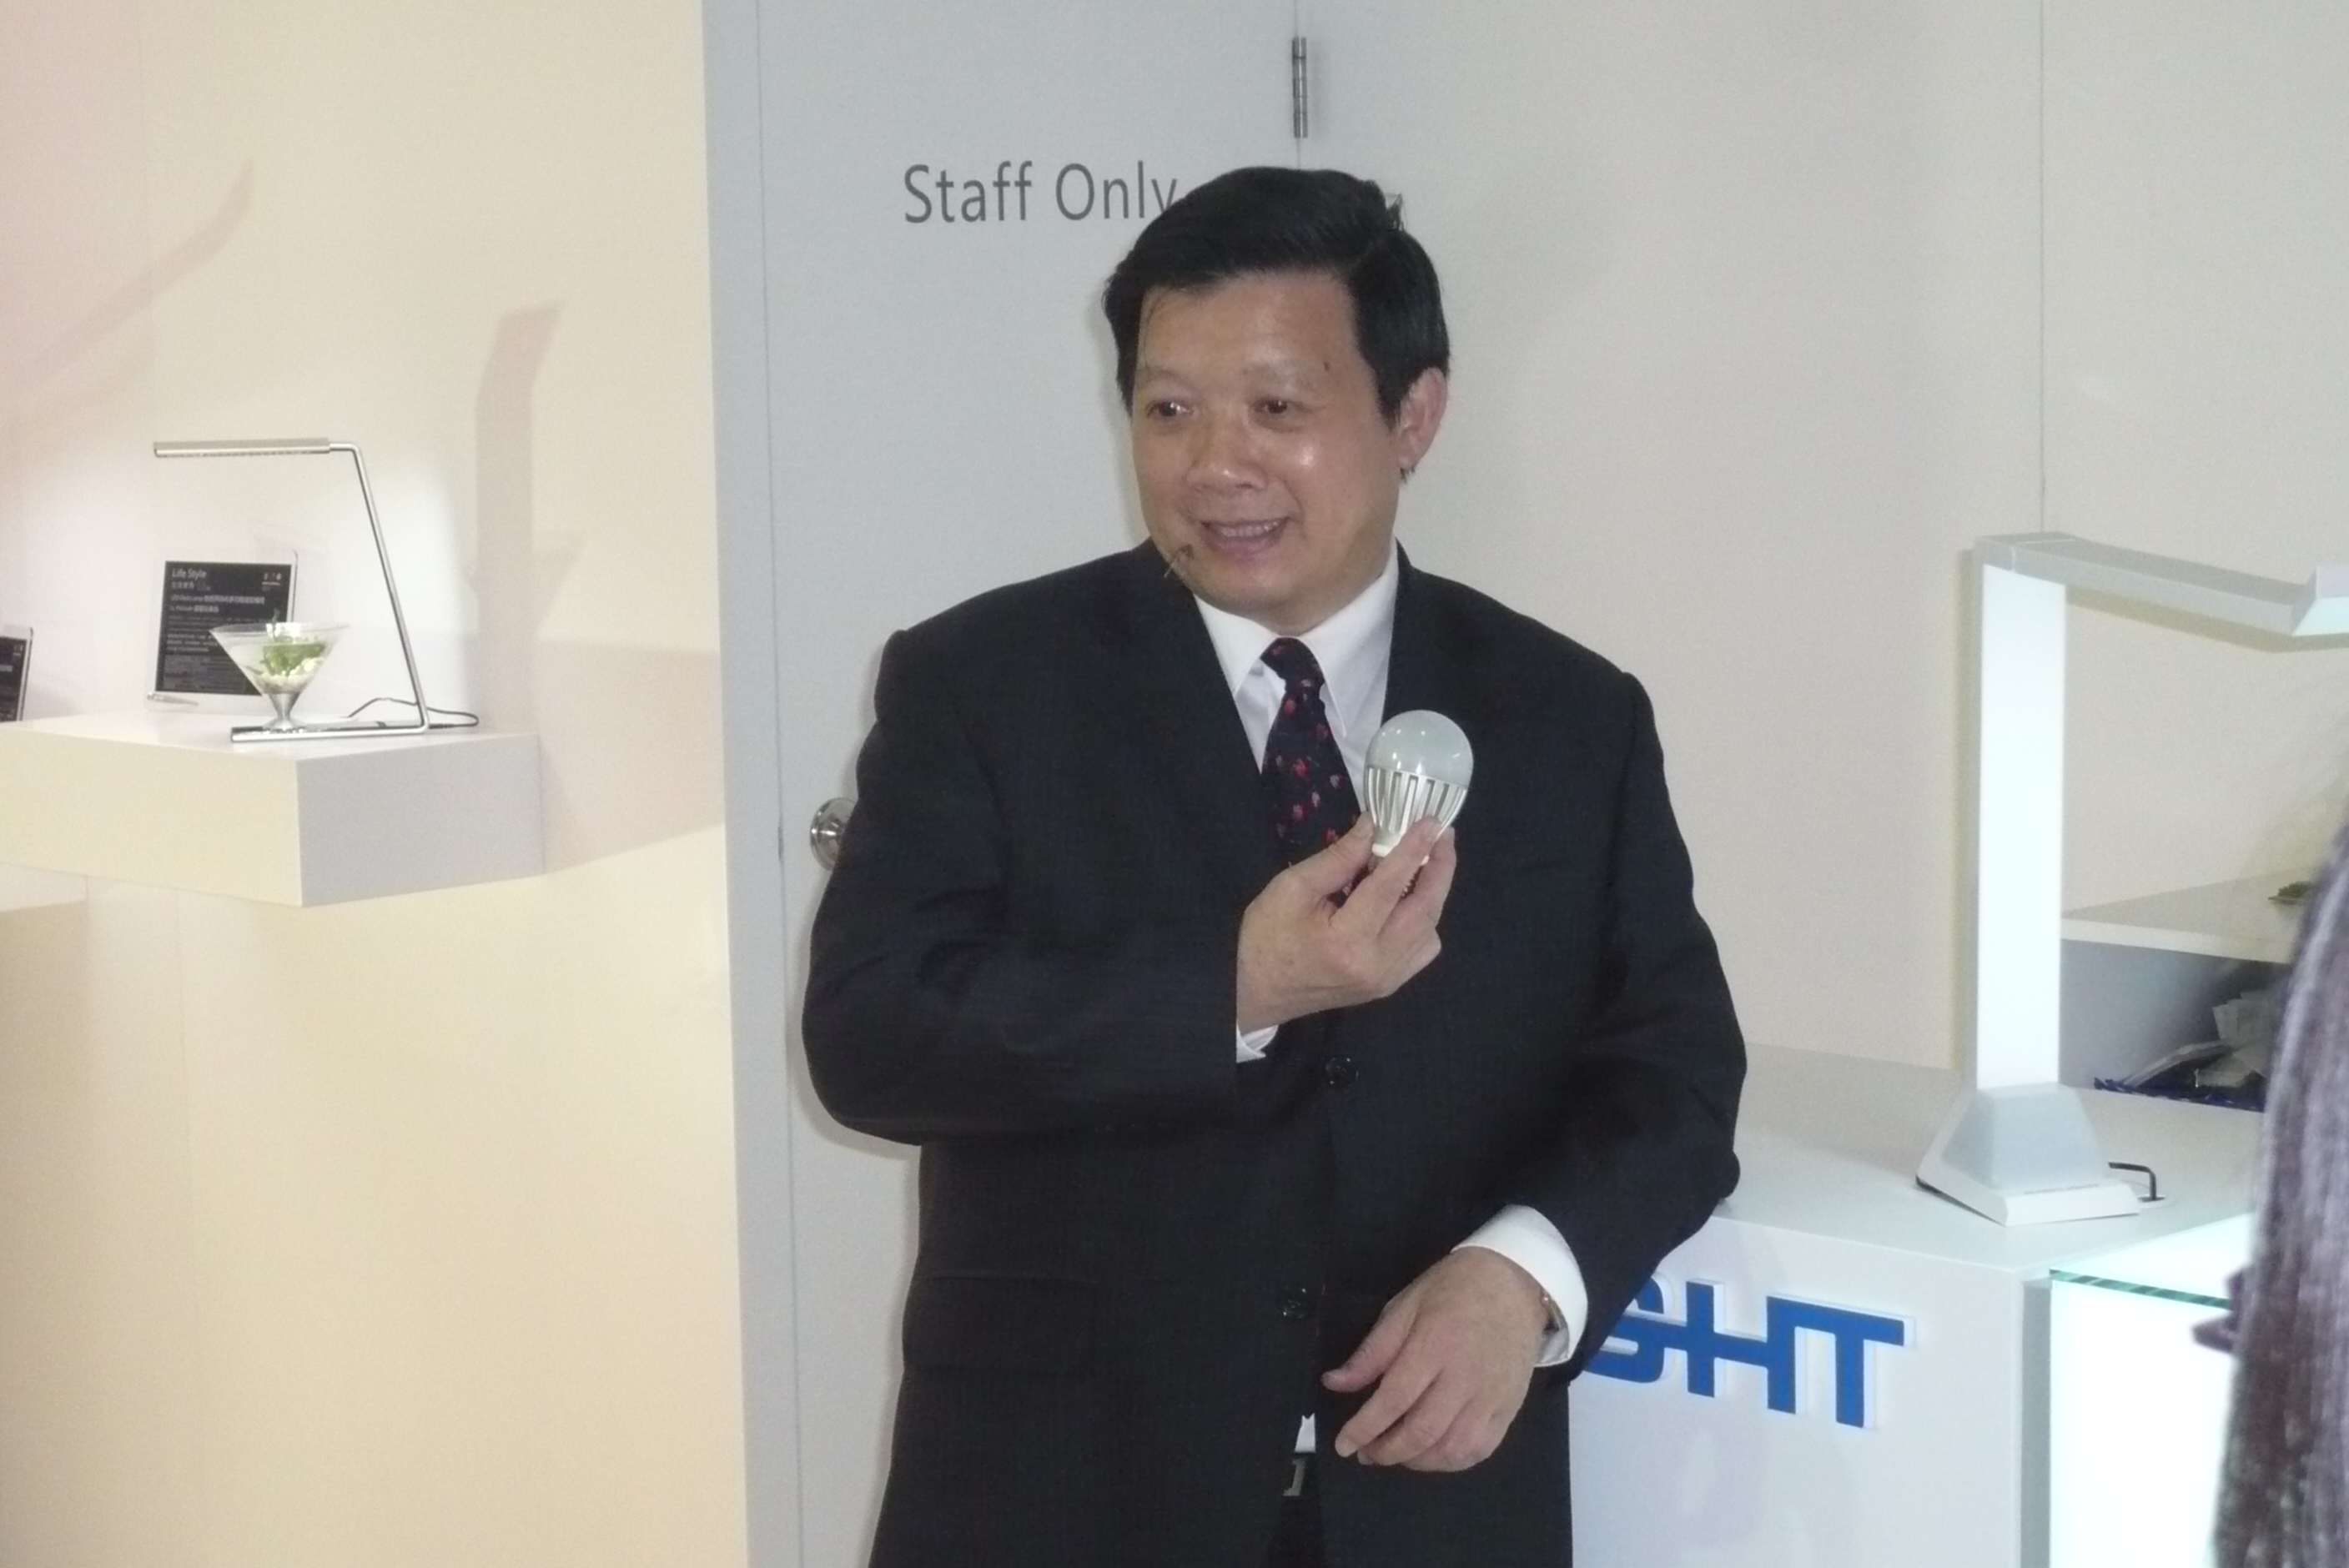 Yeh is optimistic about the 2014 LED market.